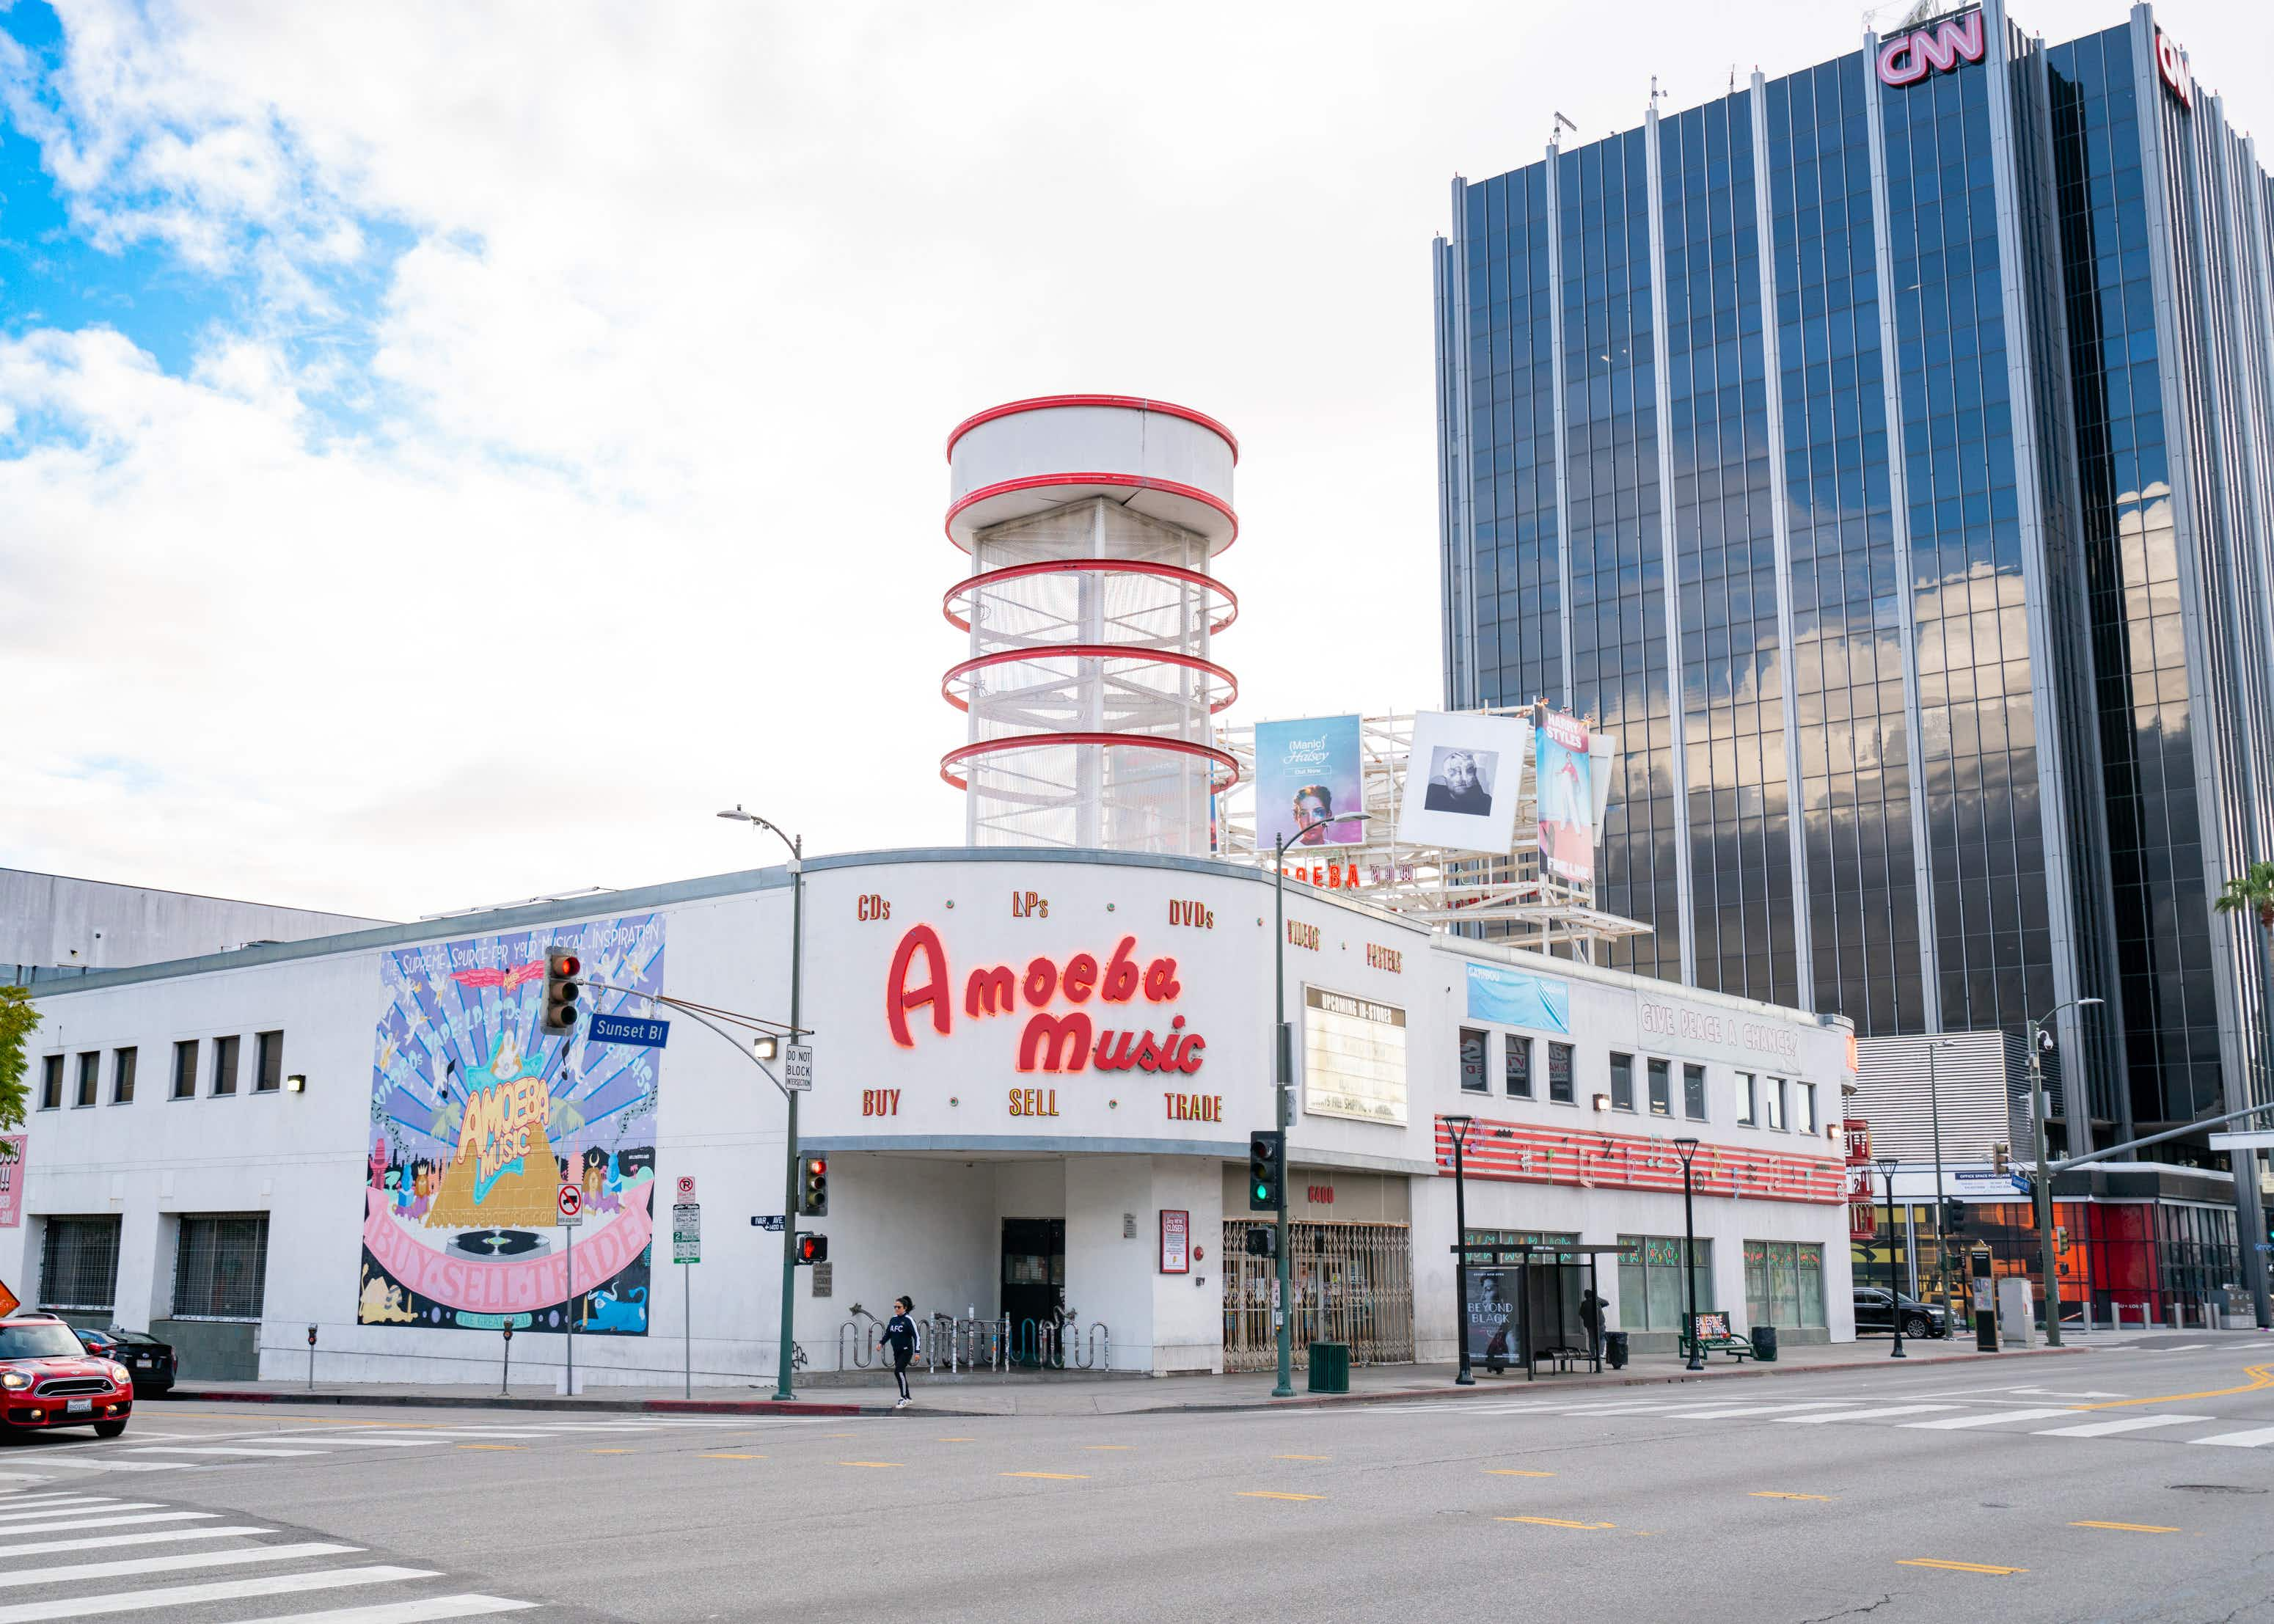 LOS ANGELES, CA - MARCH 19: A general view of Amoeba Music after Los Angeles ordered the closure of all non-essential services and entertainment venues earlier this week and hours before the 'Safer at Home' emergency order was issued by L.A. authorities amid the ongoing threat of the coronavirus outbreak on March 19, 2020 in Los Angeles, California. The World Health Organization declared coronavirus (COVID-19) a global pandemic on March 11th.  (Photo by AaronP/Bauer-Griffin/GC Images)